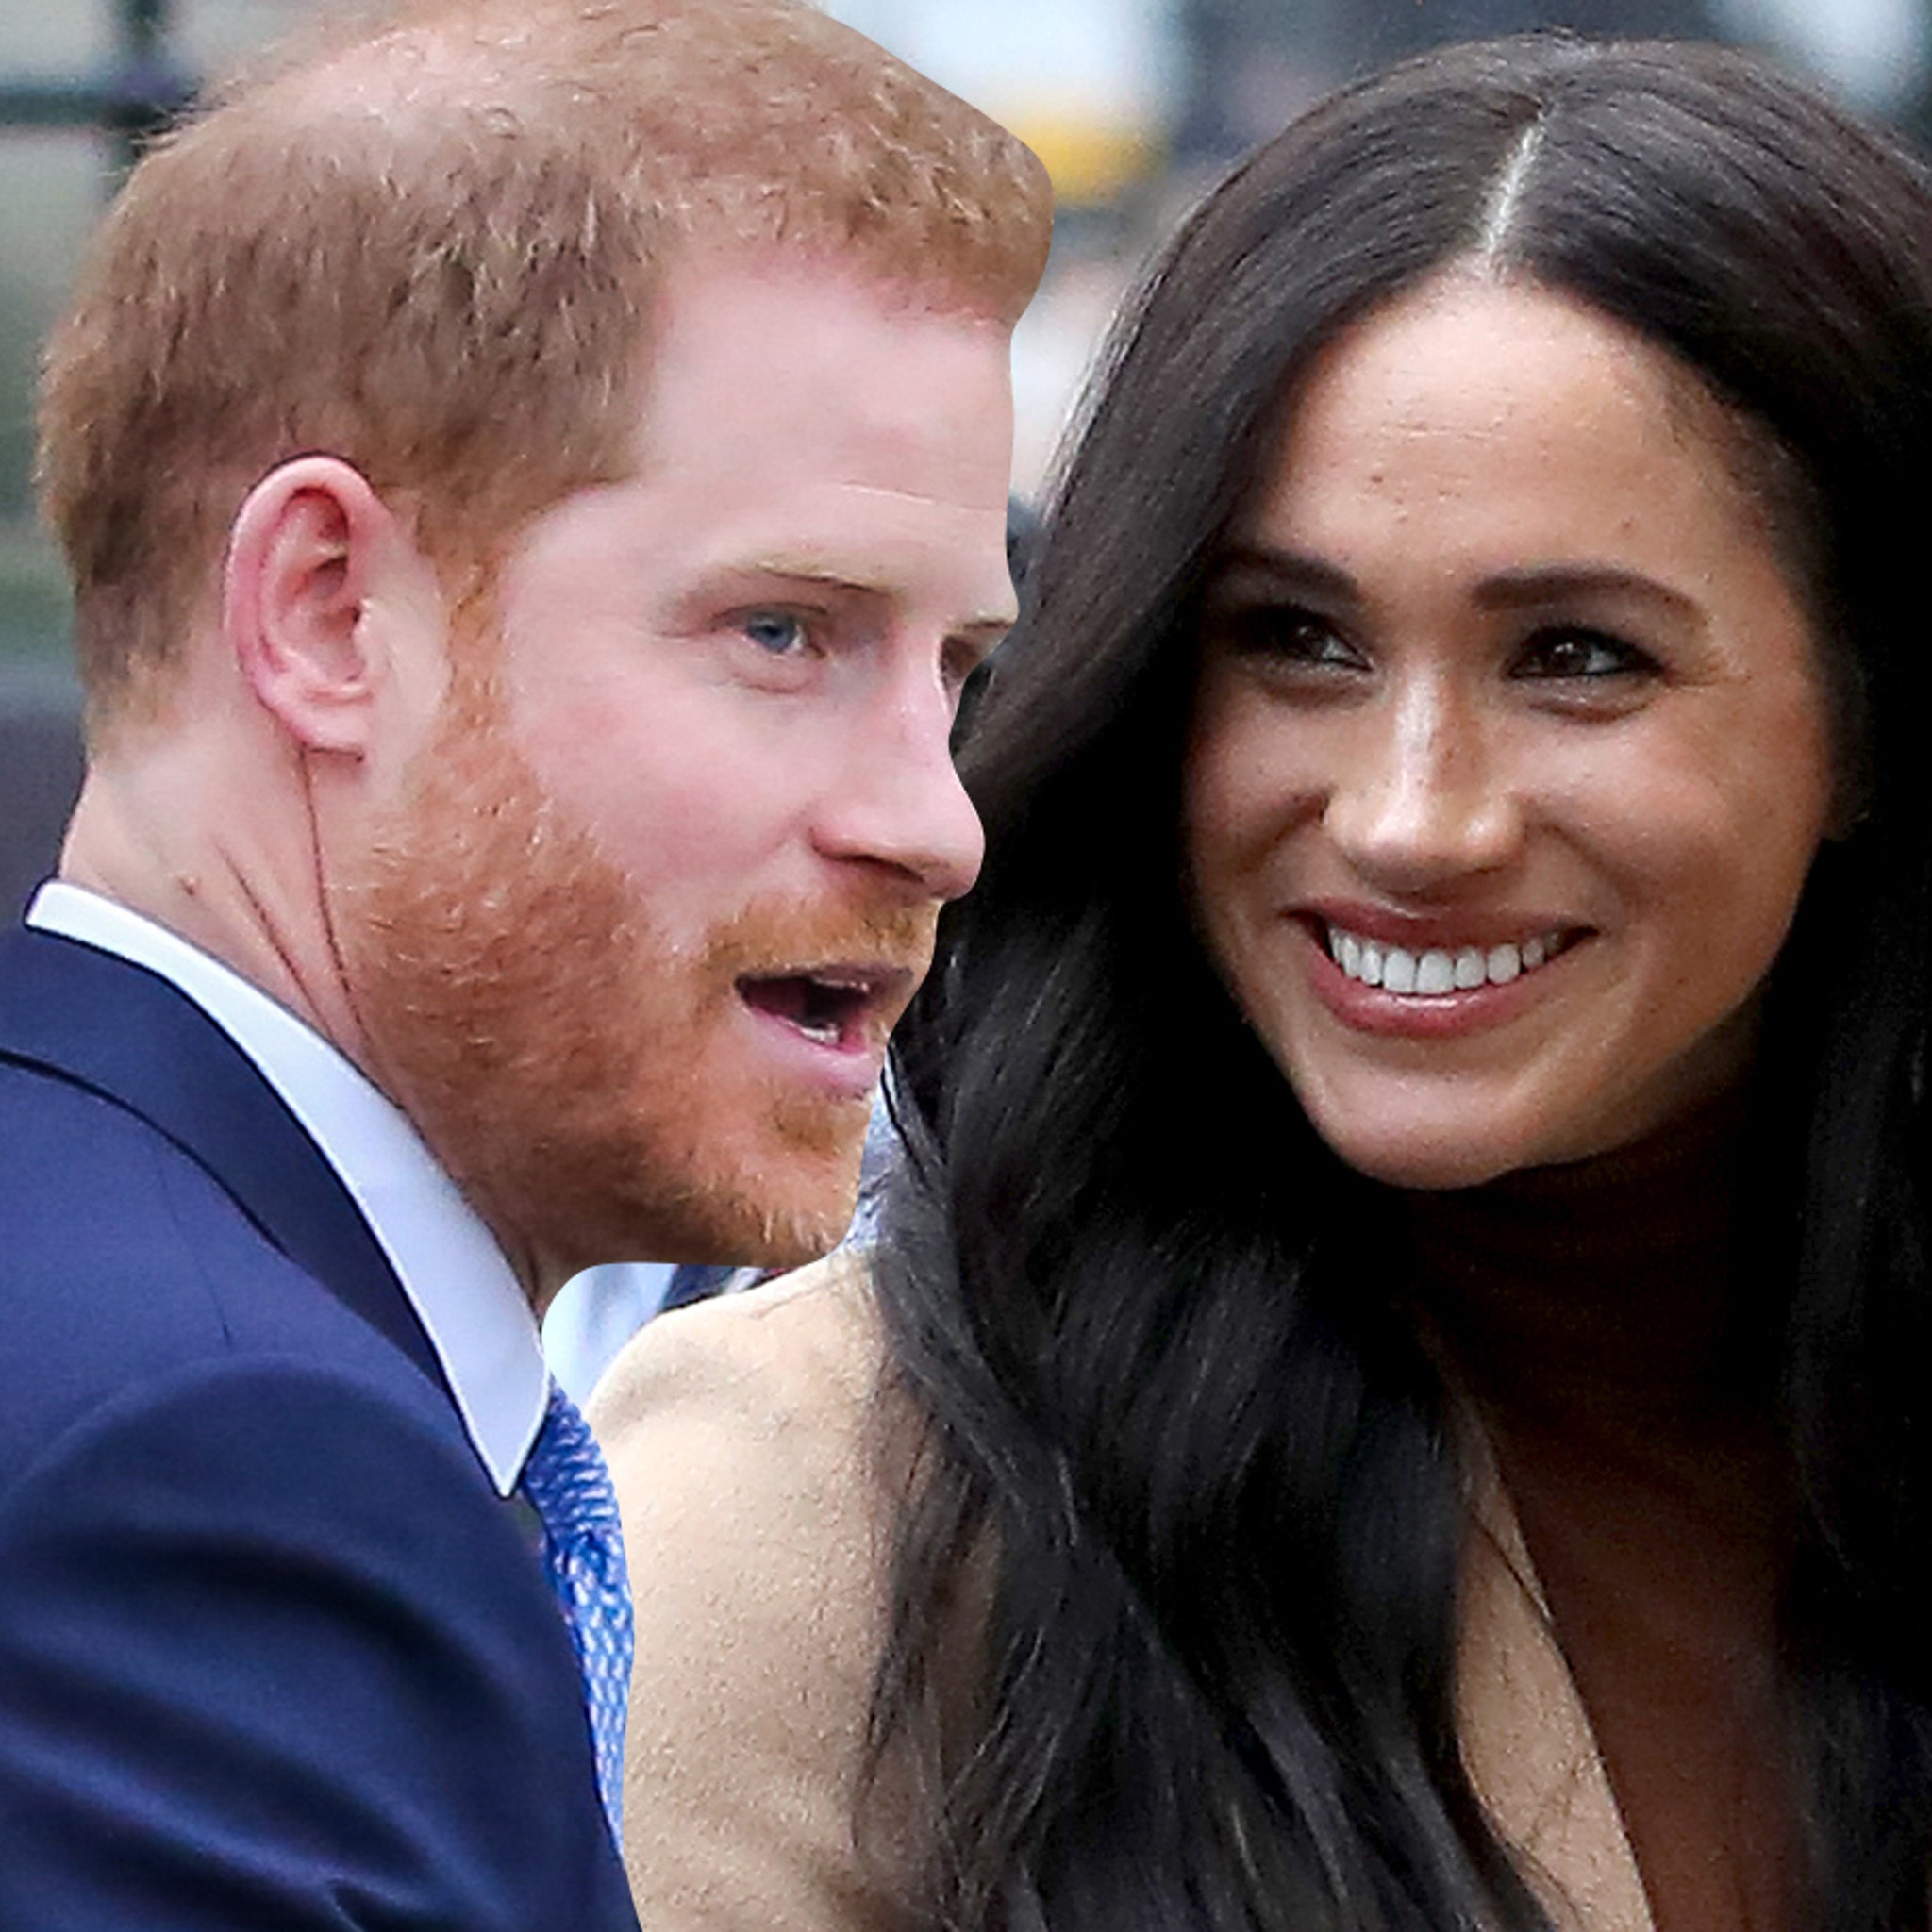 Prince Harry and Meghan Markle Step Down as Senior Royals, Moving to Canada